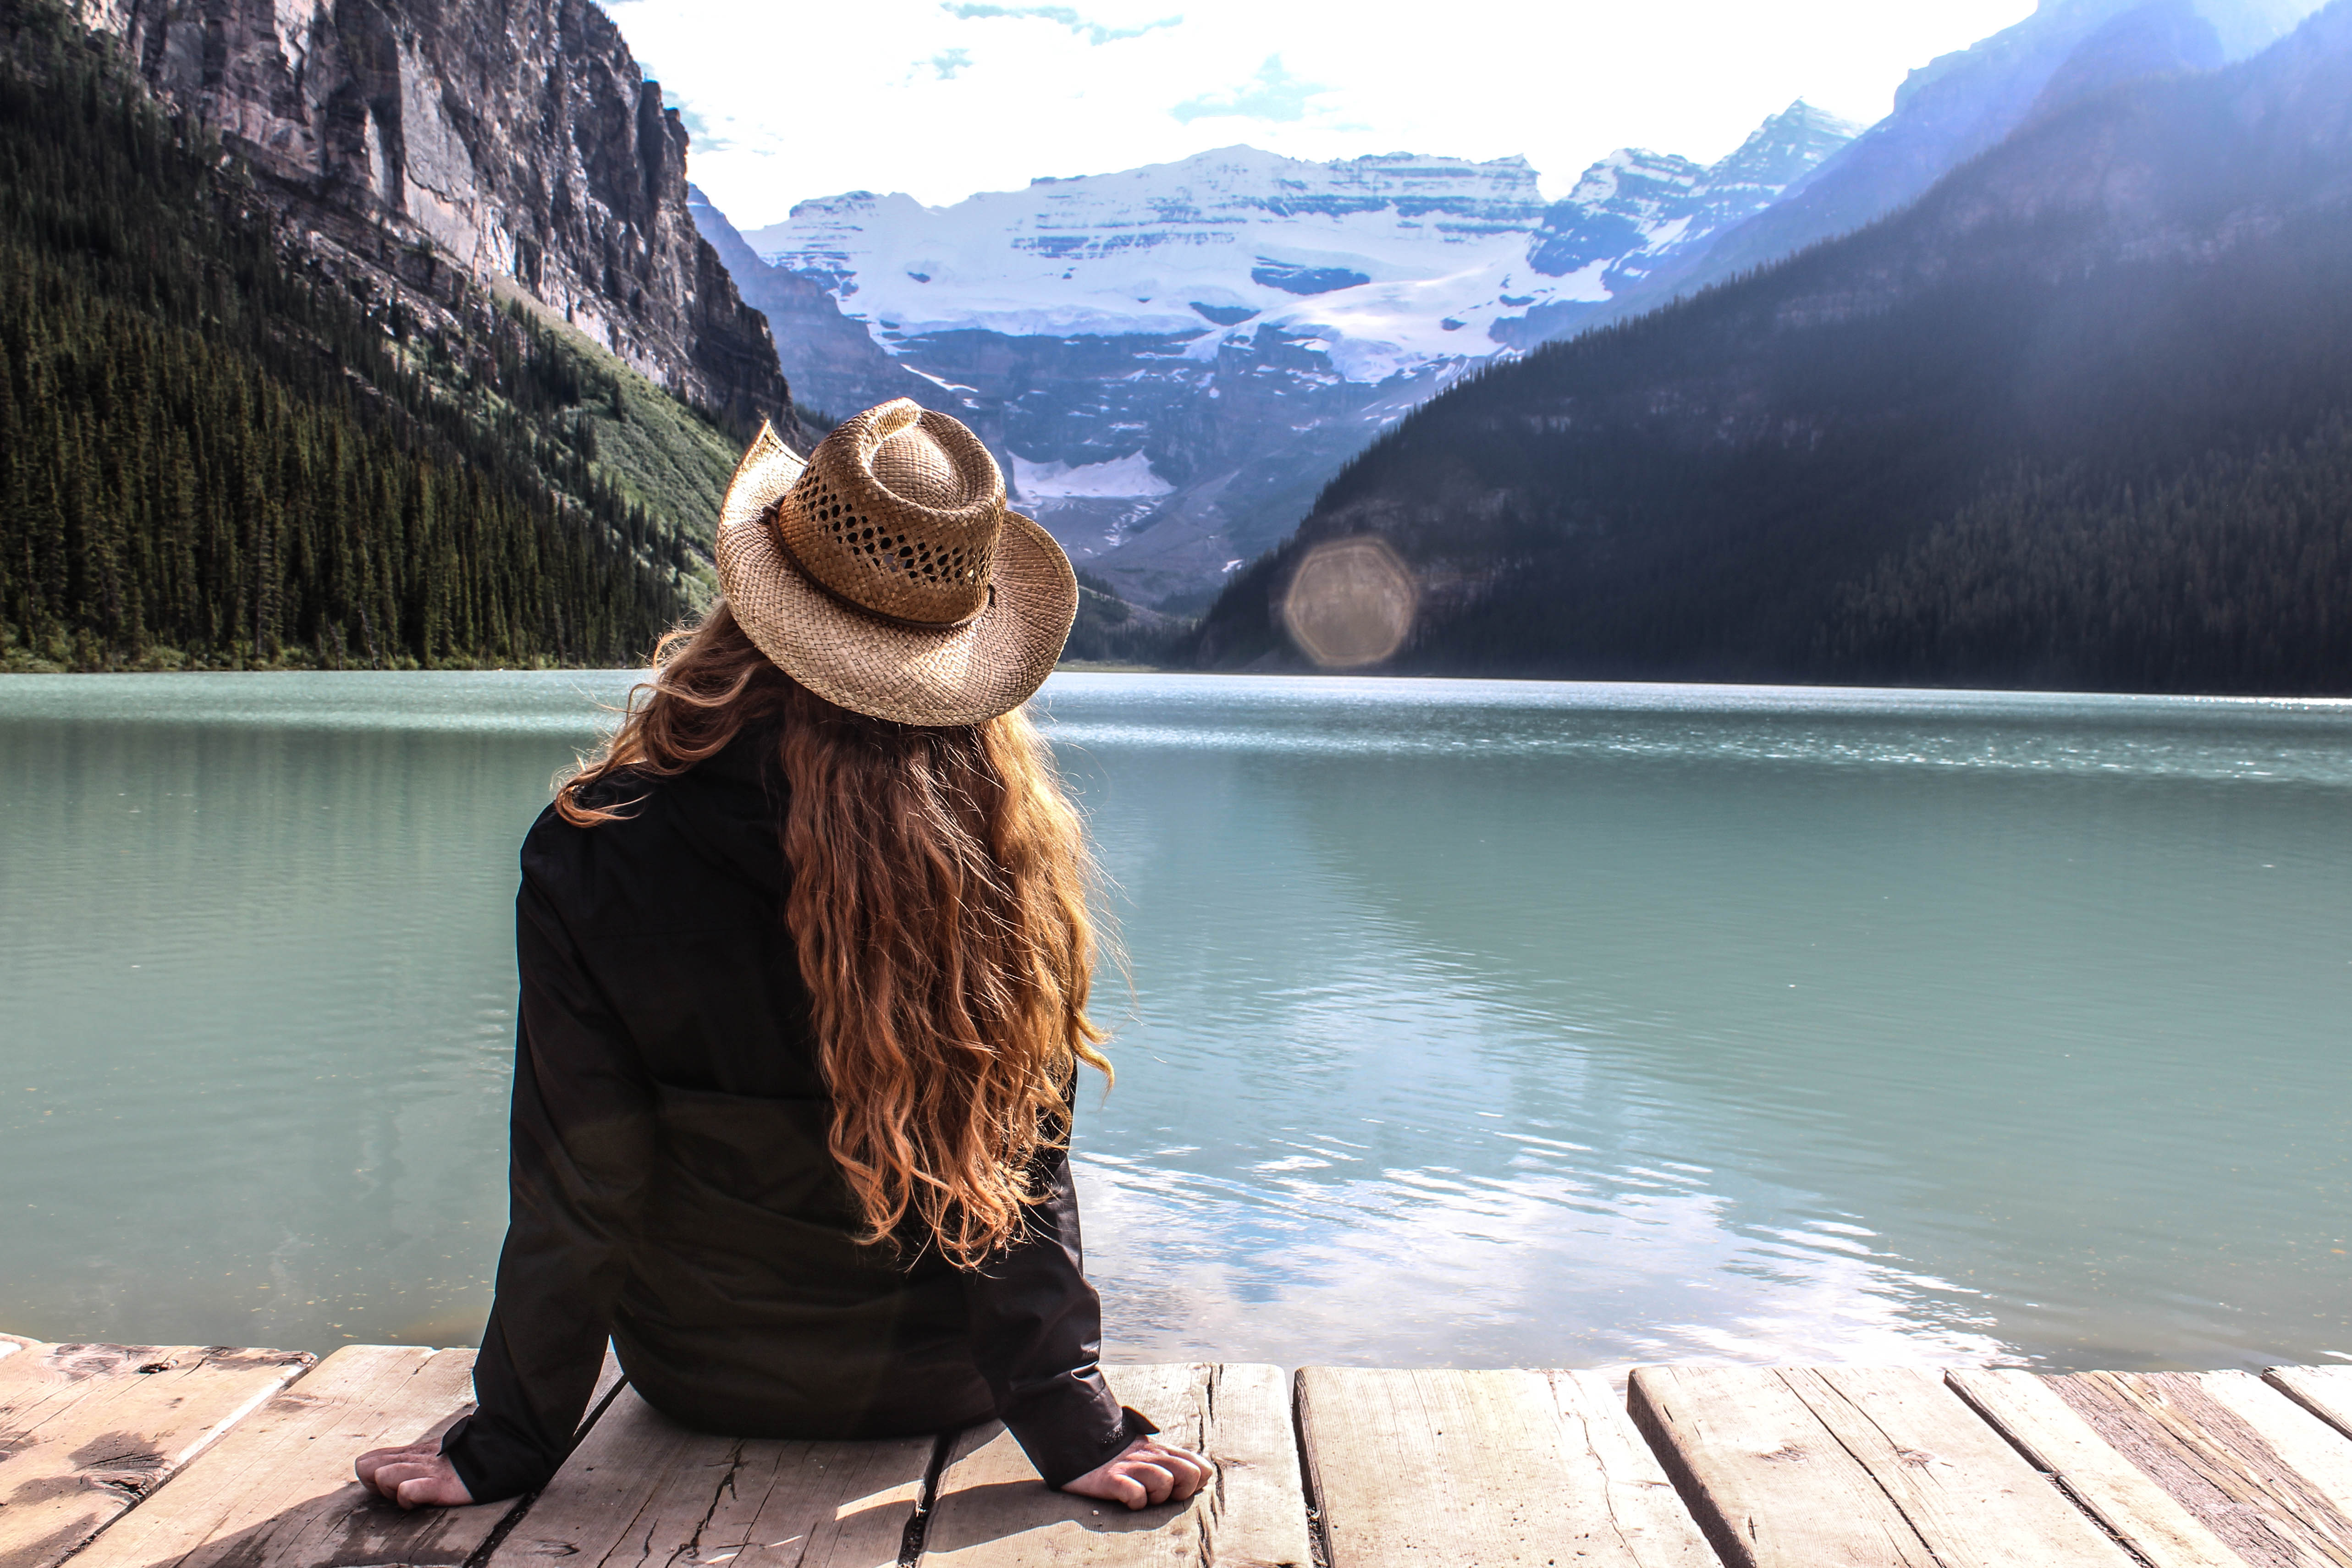 Candice at Lake Louise